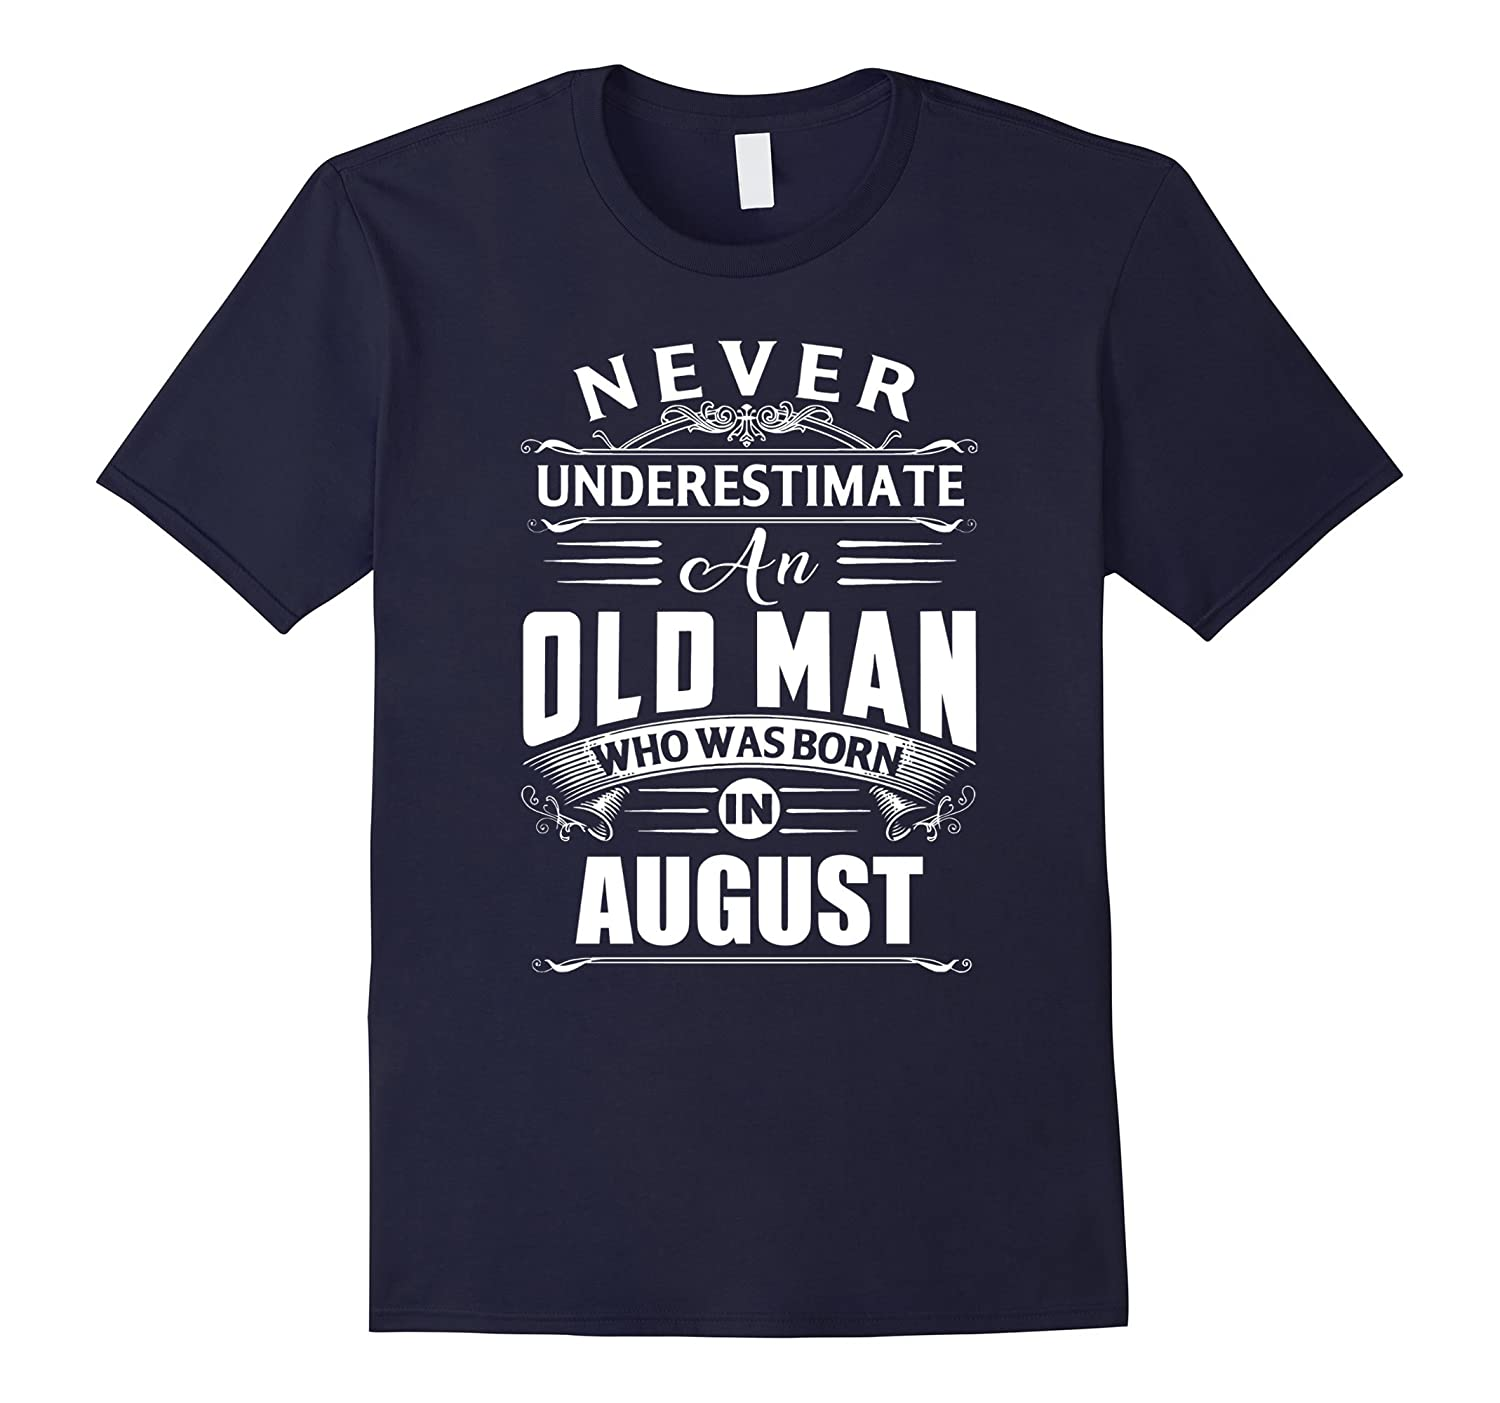 An old man who was born in August T-shirt-BN